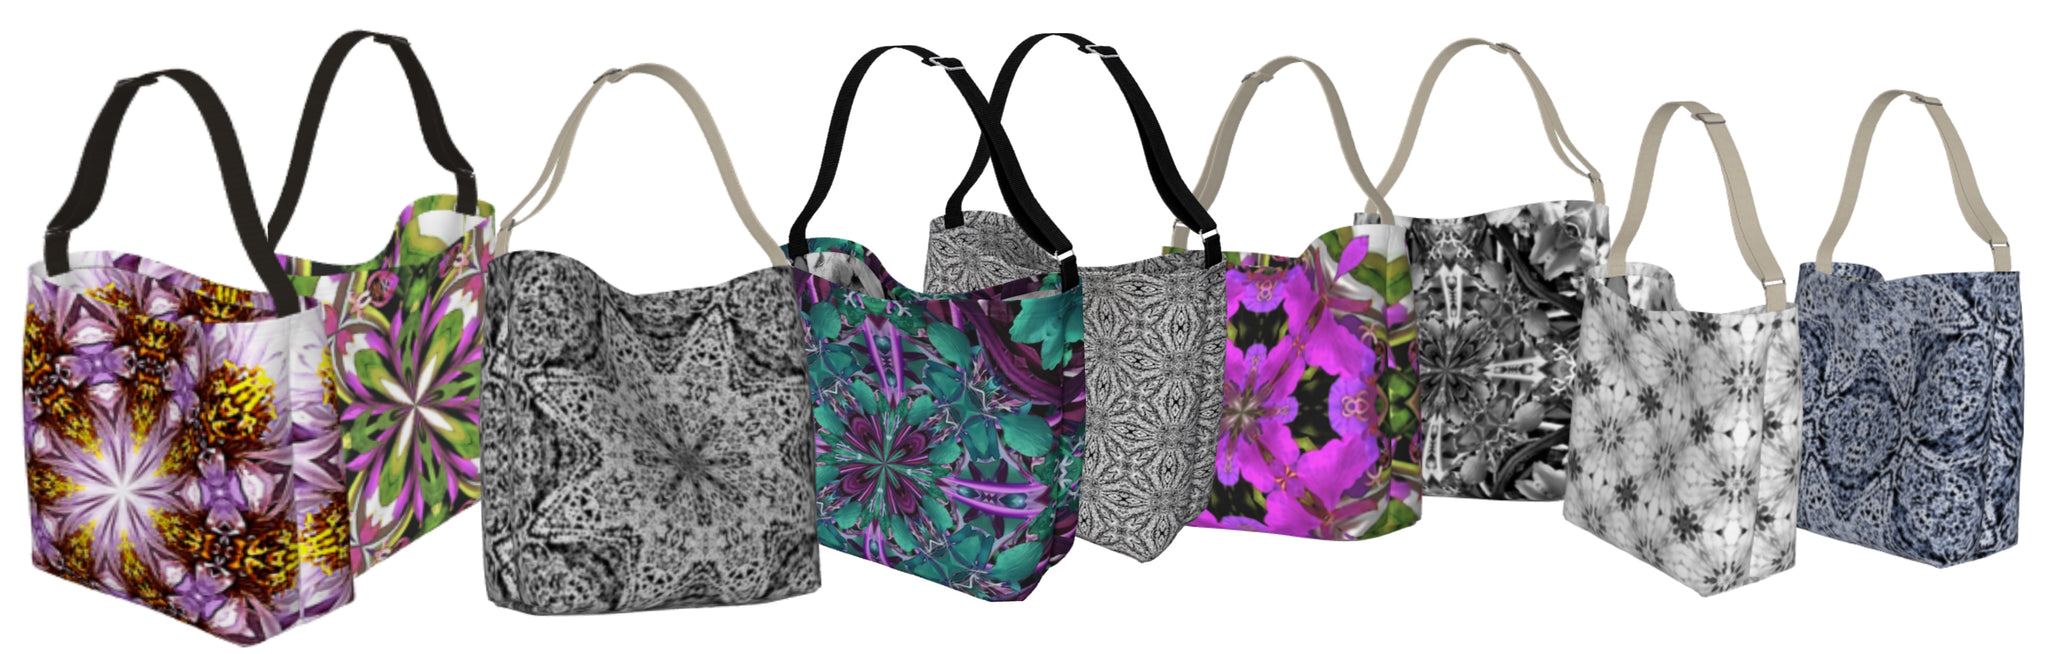 Stretchy Eco Fabric Hobo Bag Crossbody Tote